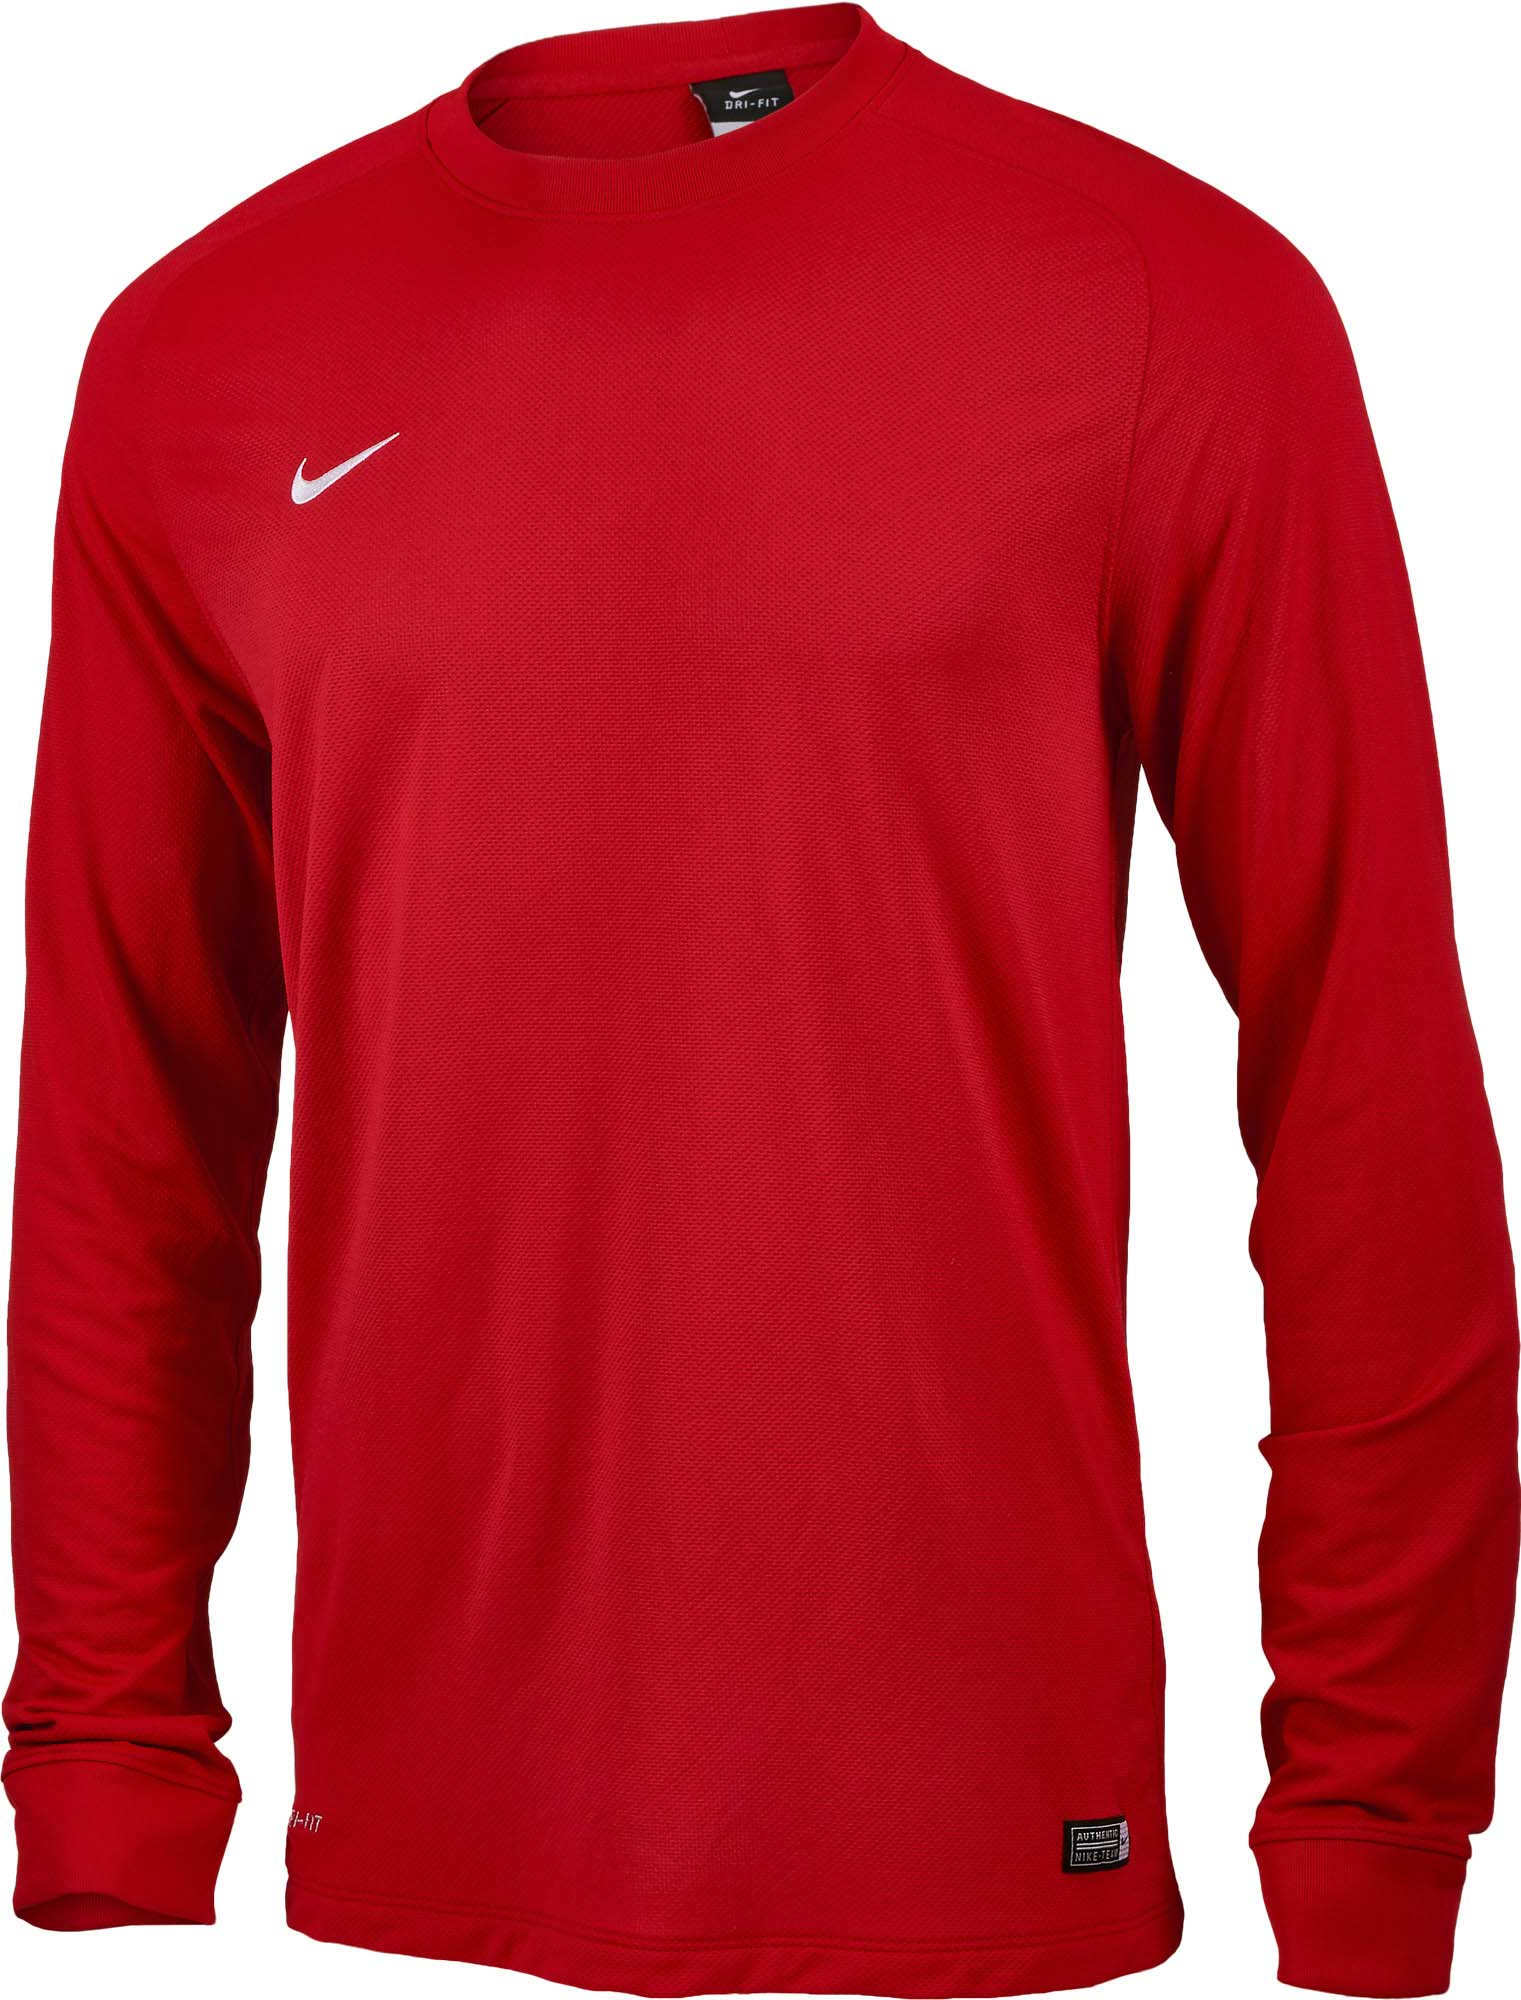 27ac8df37 Nike Park II Goalkeeper Jersey - Red - Soccer Master